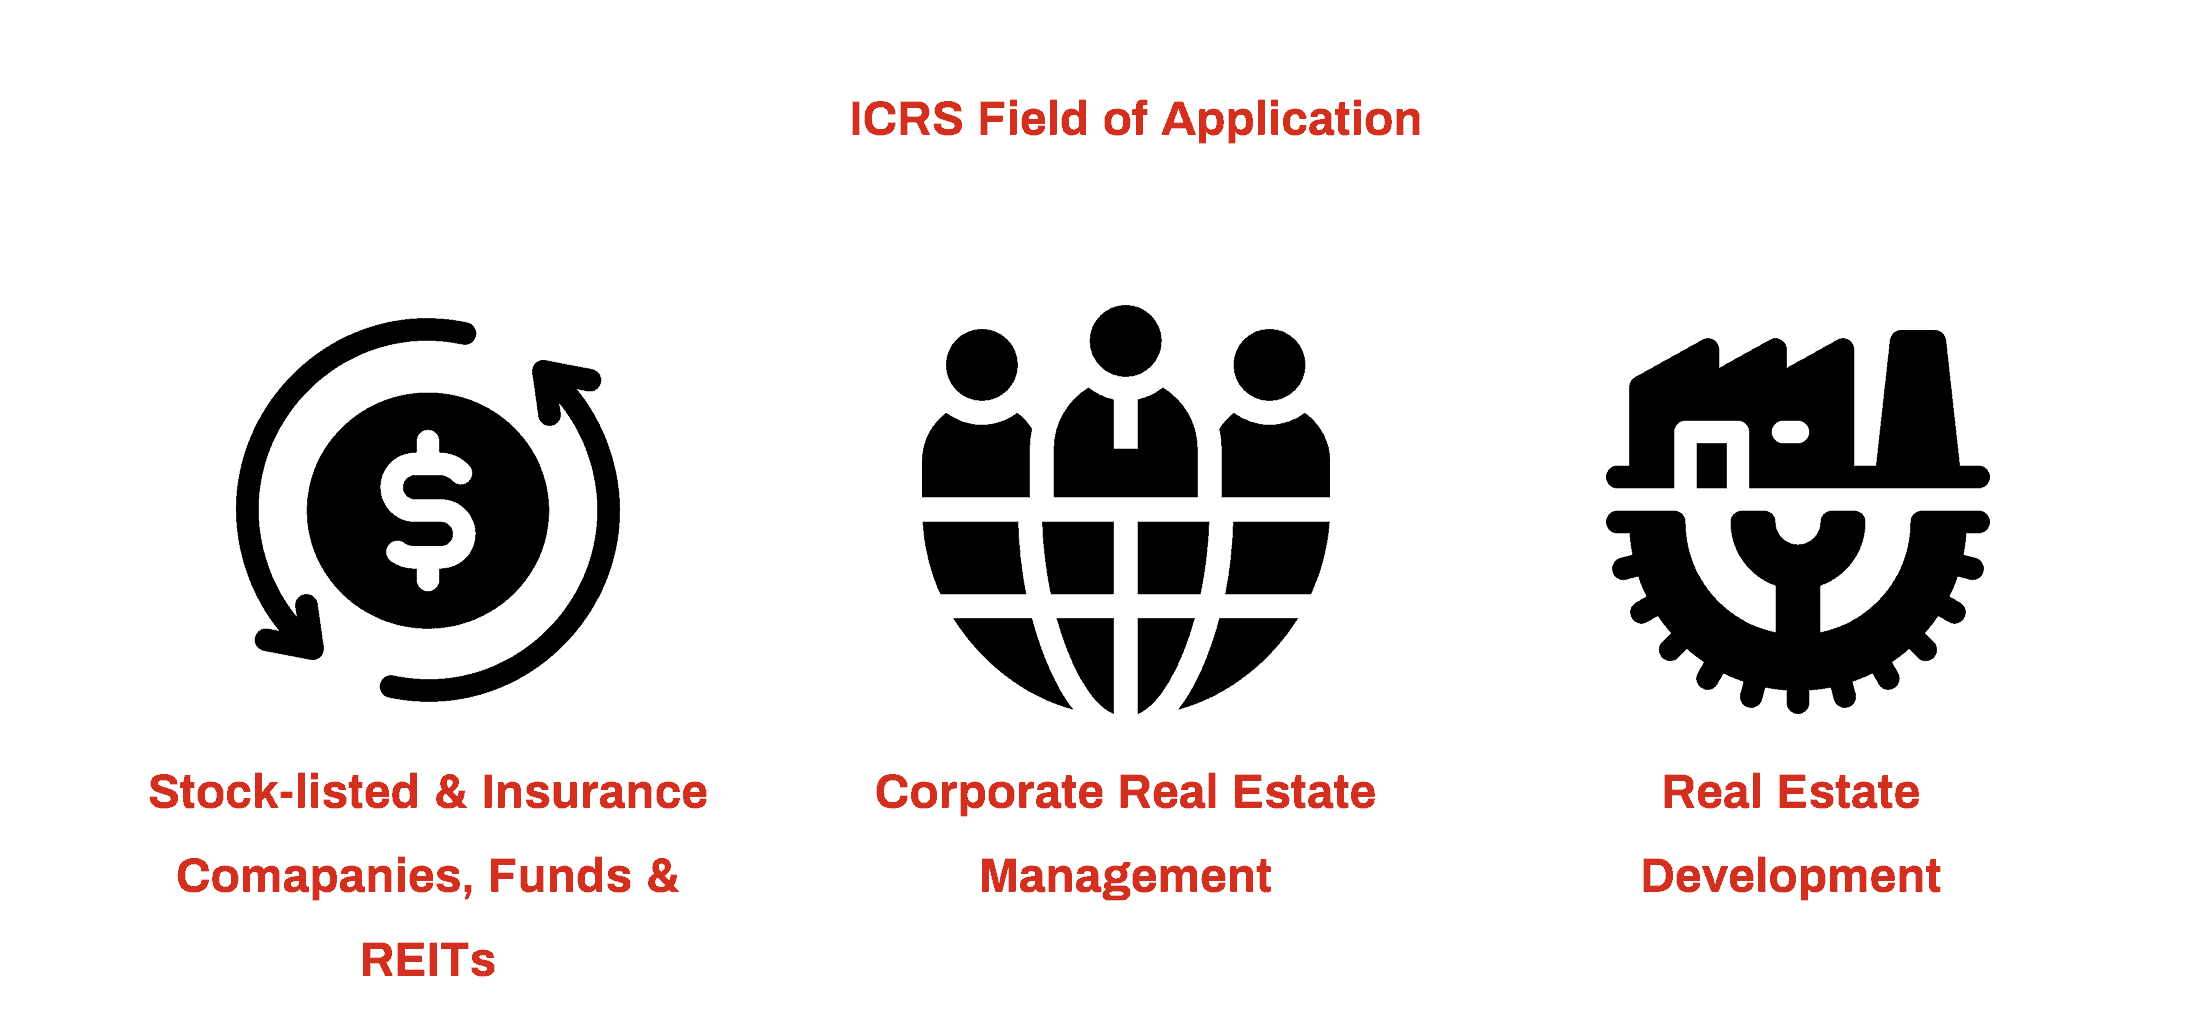 ICRS: field of application